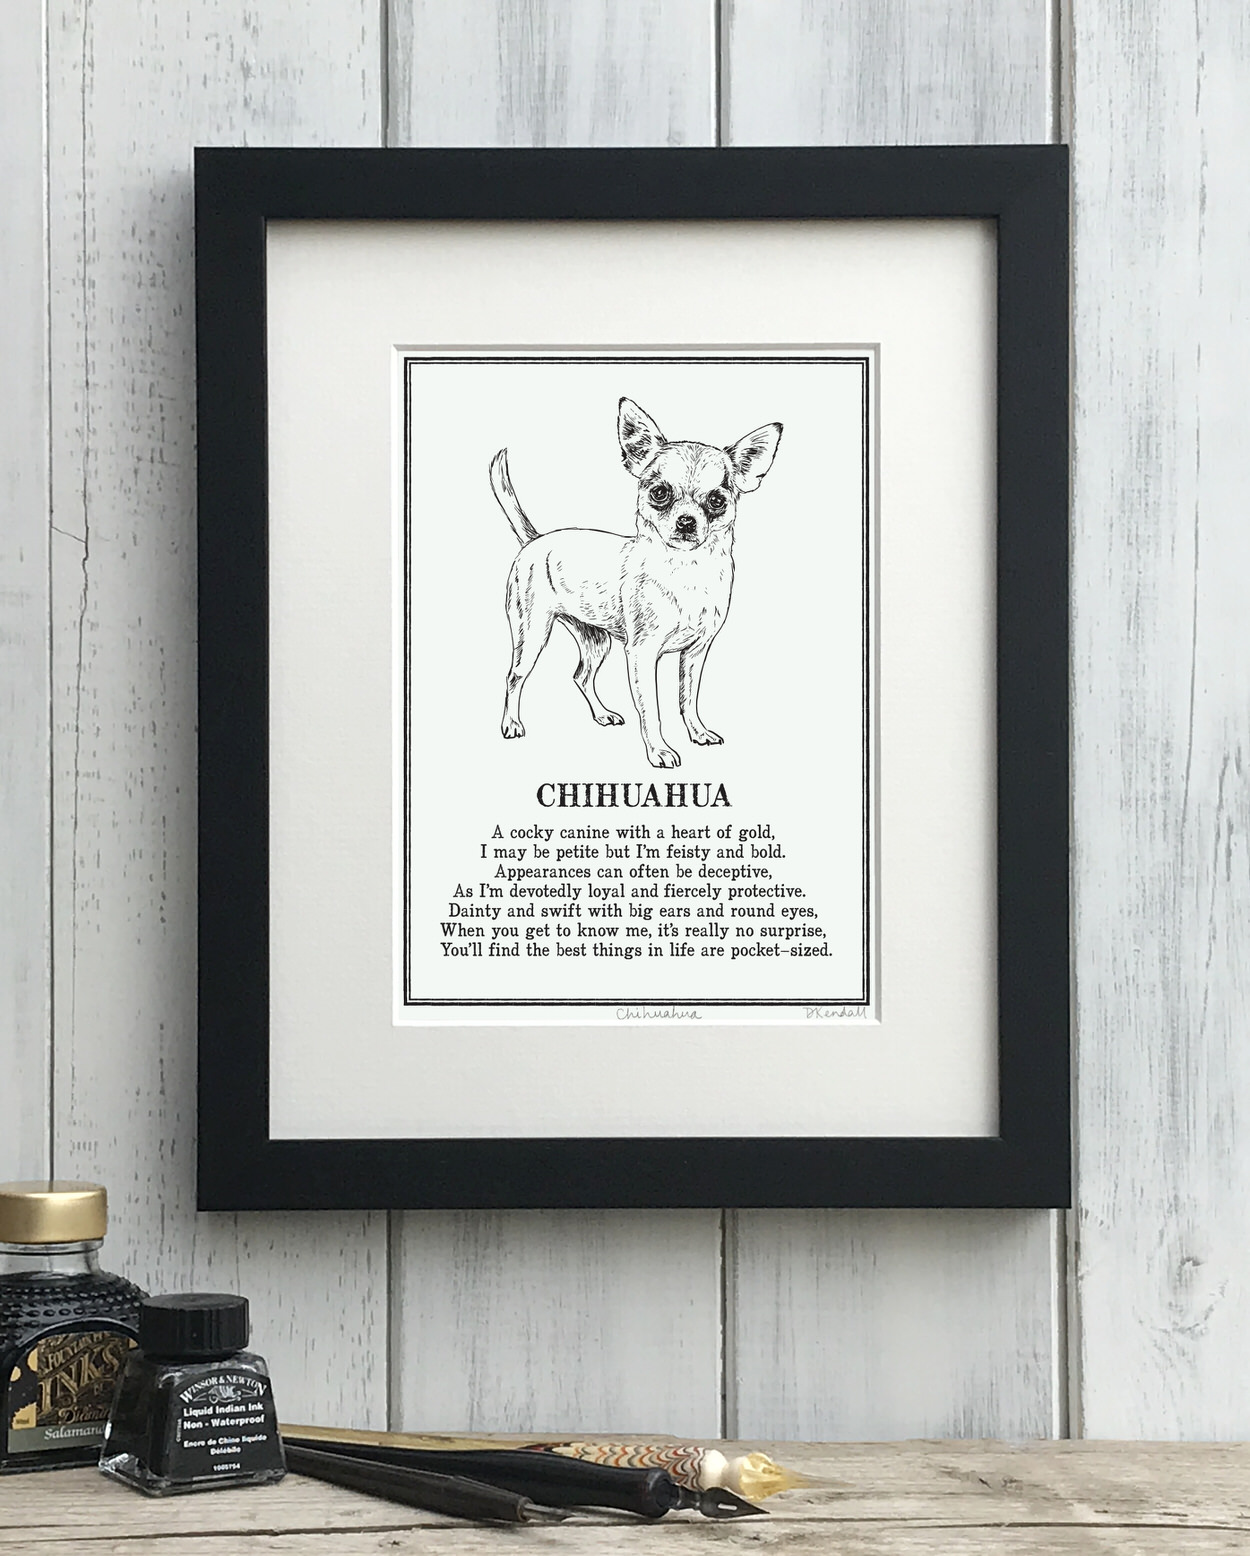 Chihuahua print illustrated poem by The Enlightened Hound